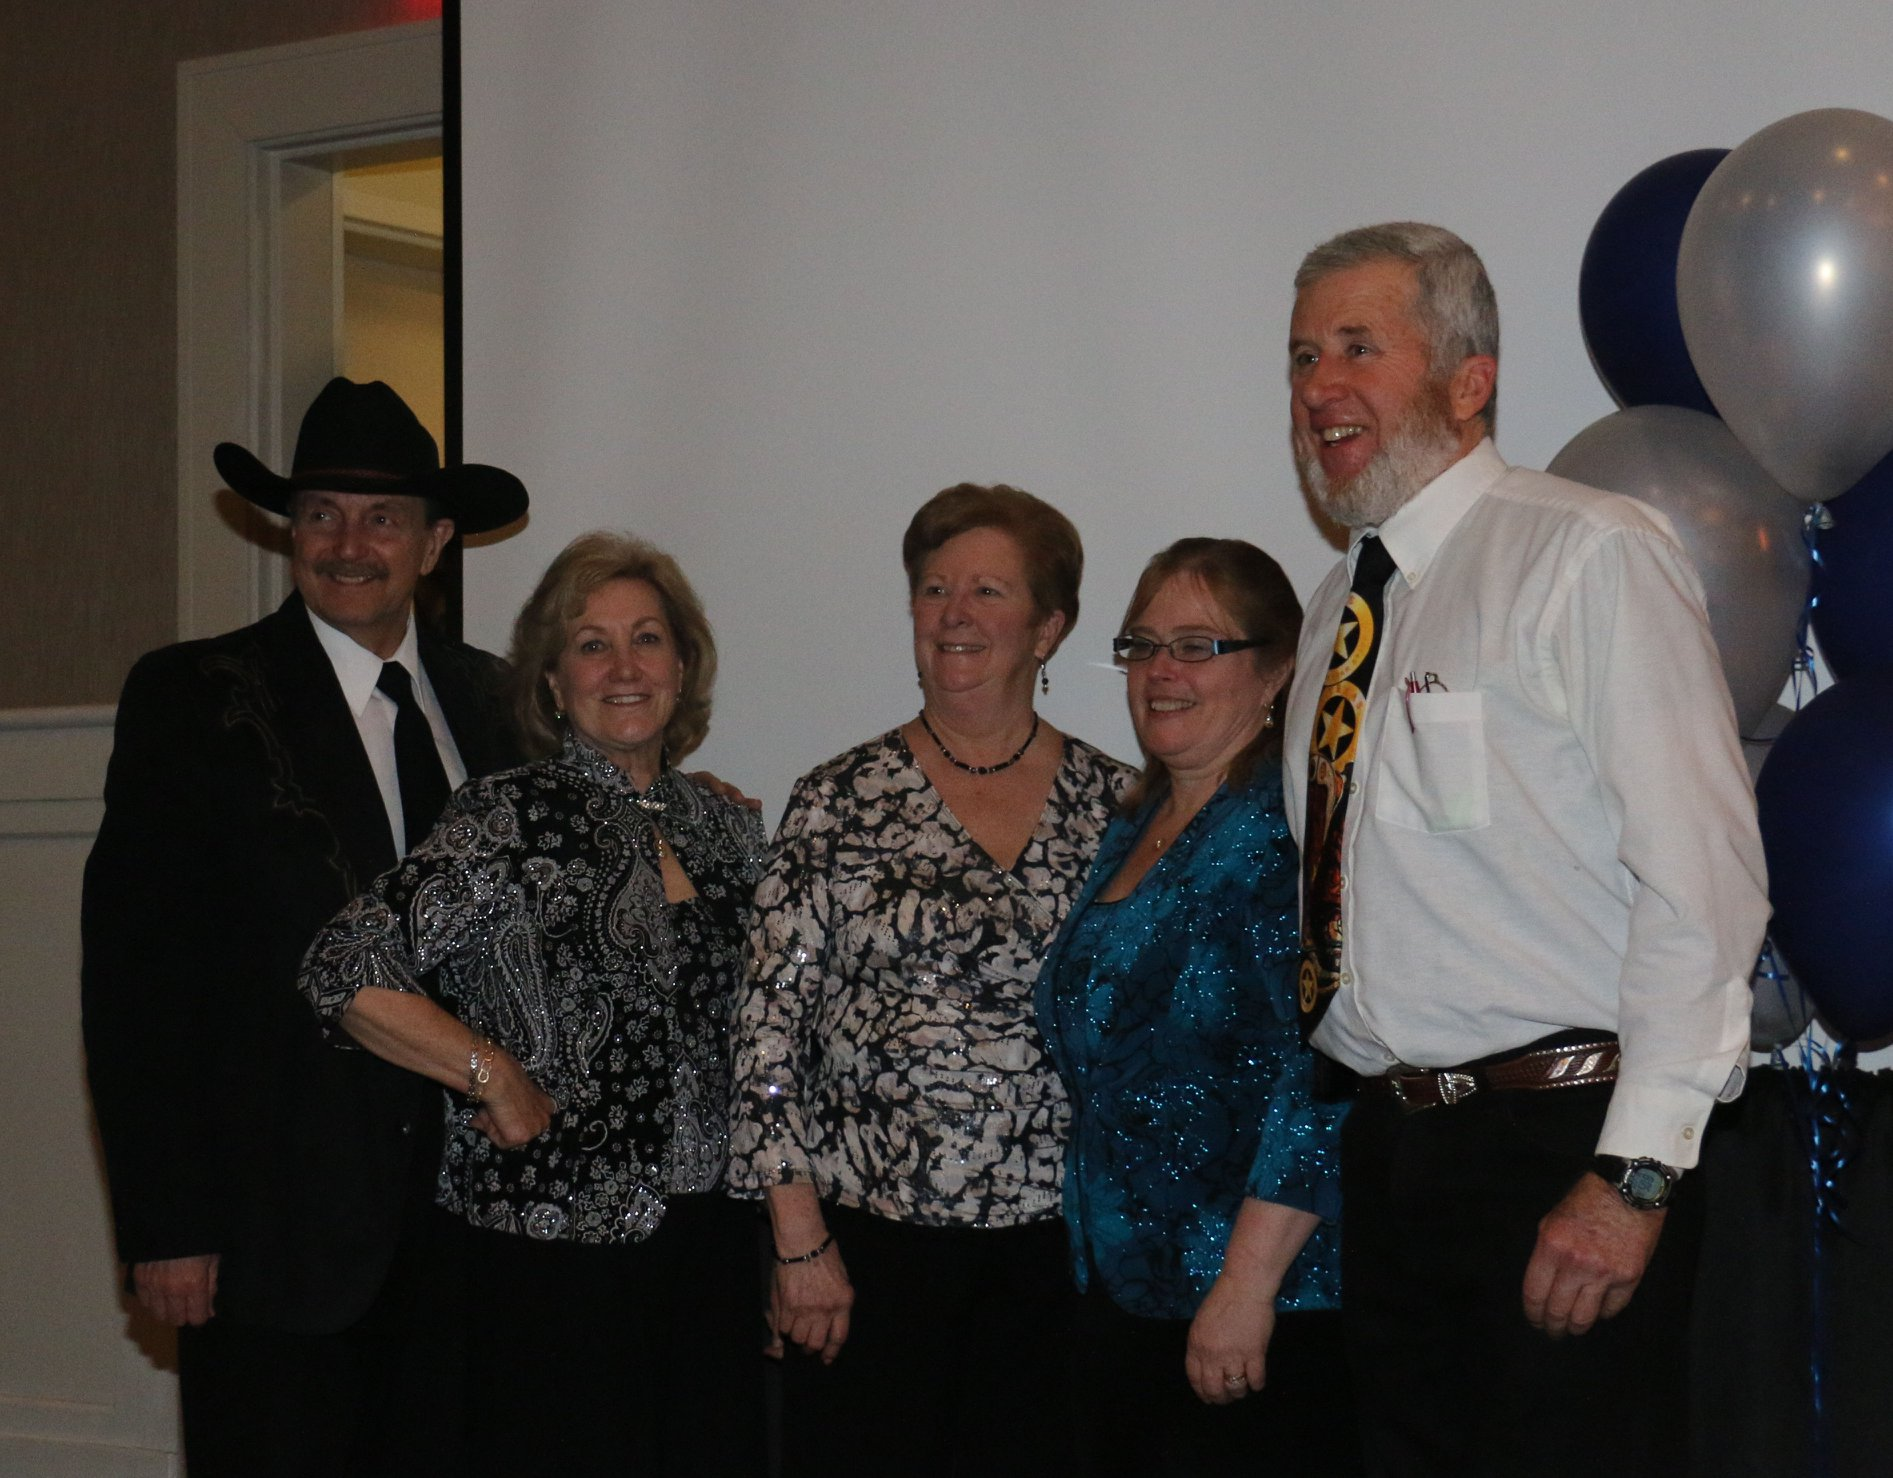 NEMHA Past and Current President: Bob Harb, Chris Cassenti, Joan Travers, Judy Travers, Dick Pitman